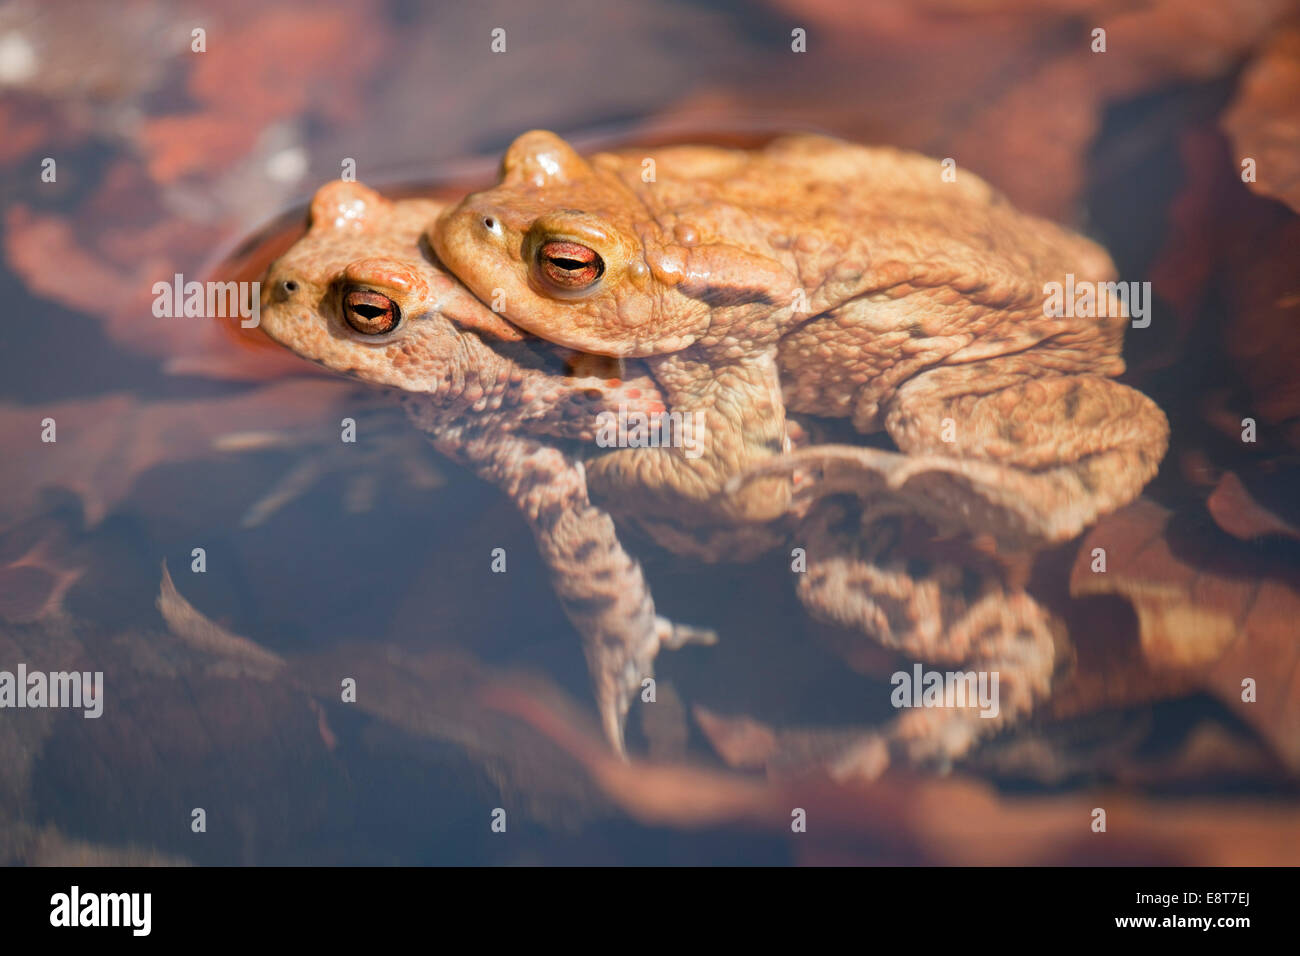 Common Toads (Bufo bufo), mating, male clasping a female, amplexus, Thuringia, Germany - Stock Image